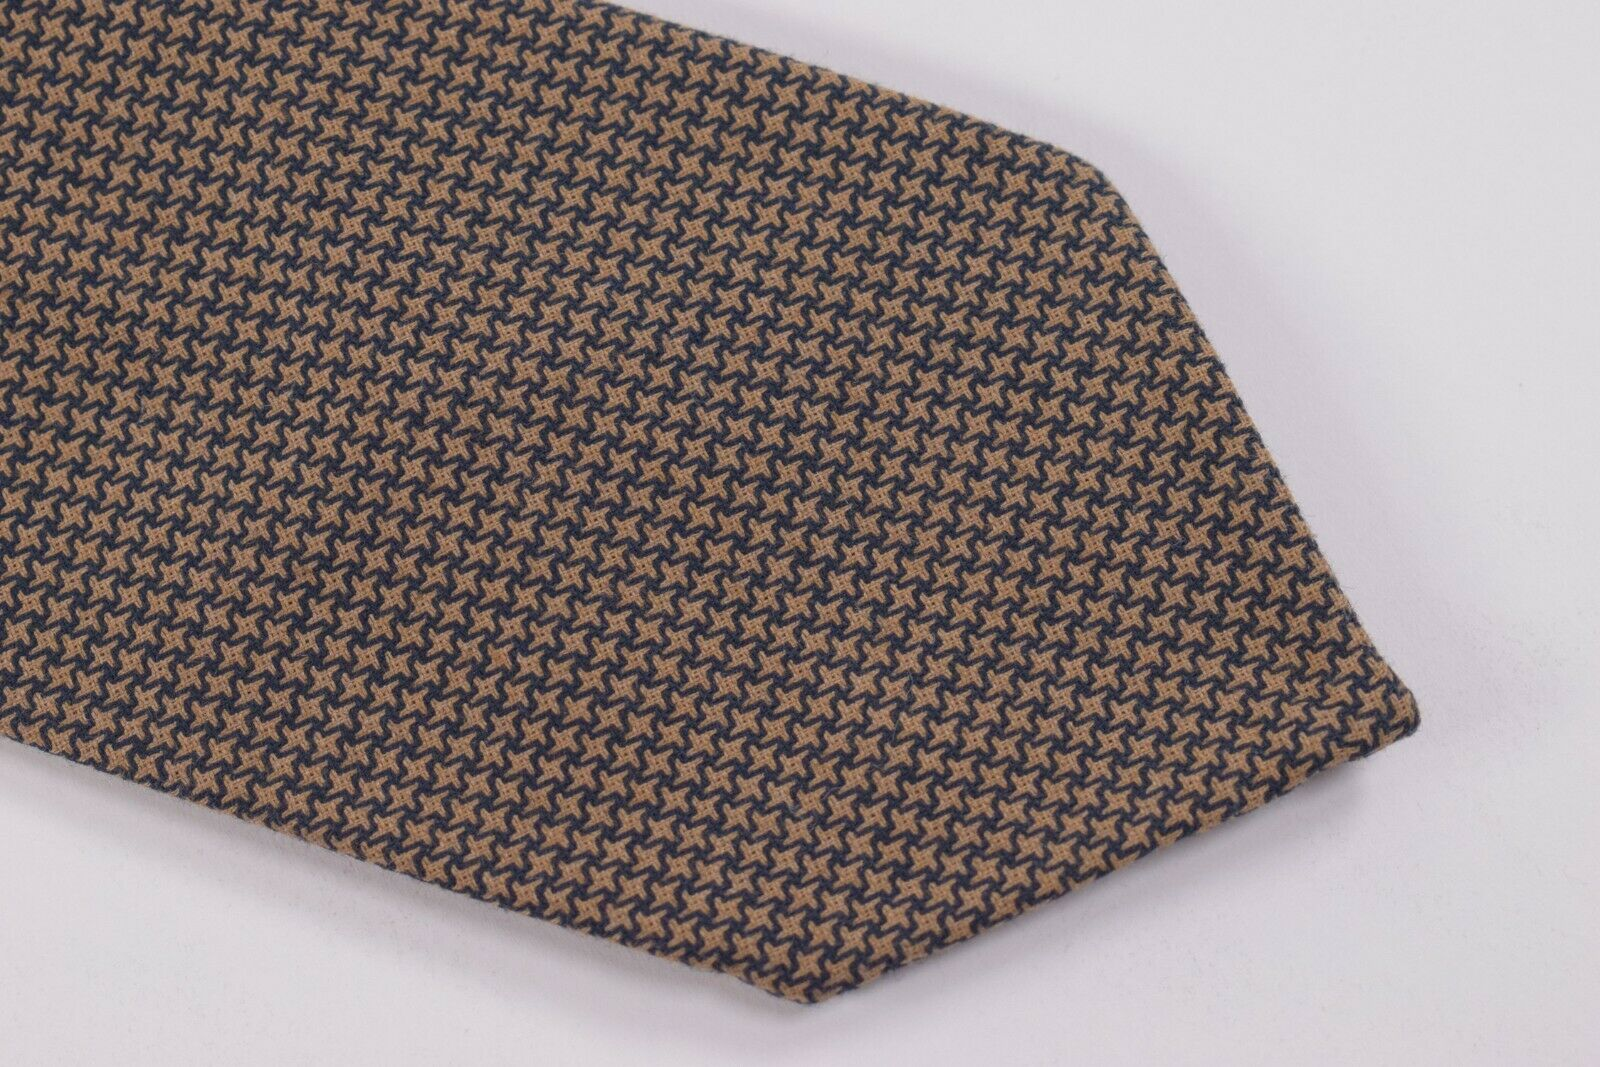 Belvest Neck Tie NWT Brown and Black Houndstooth Cotton Blend